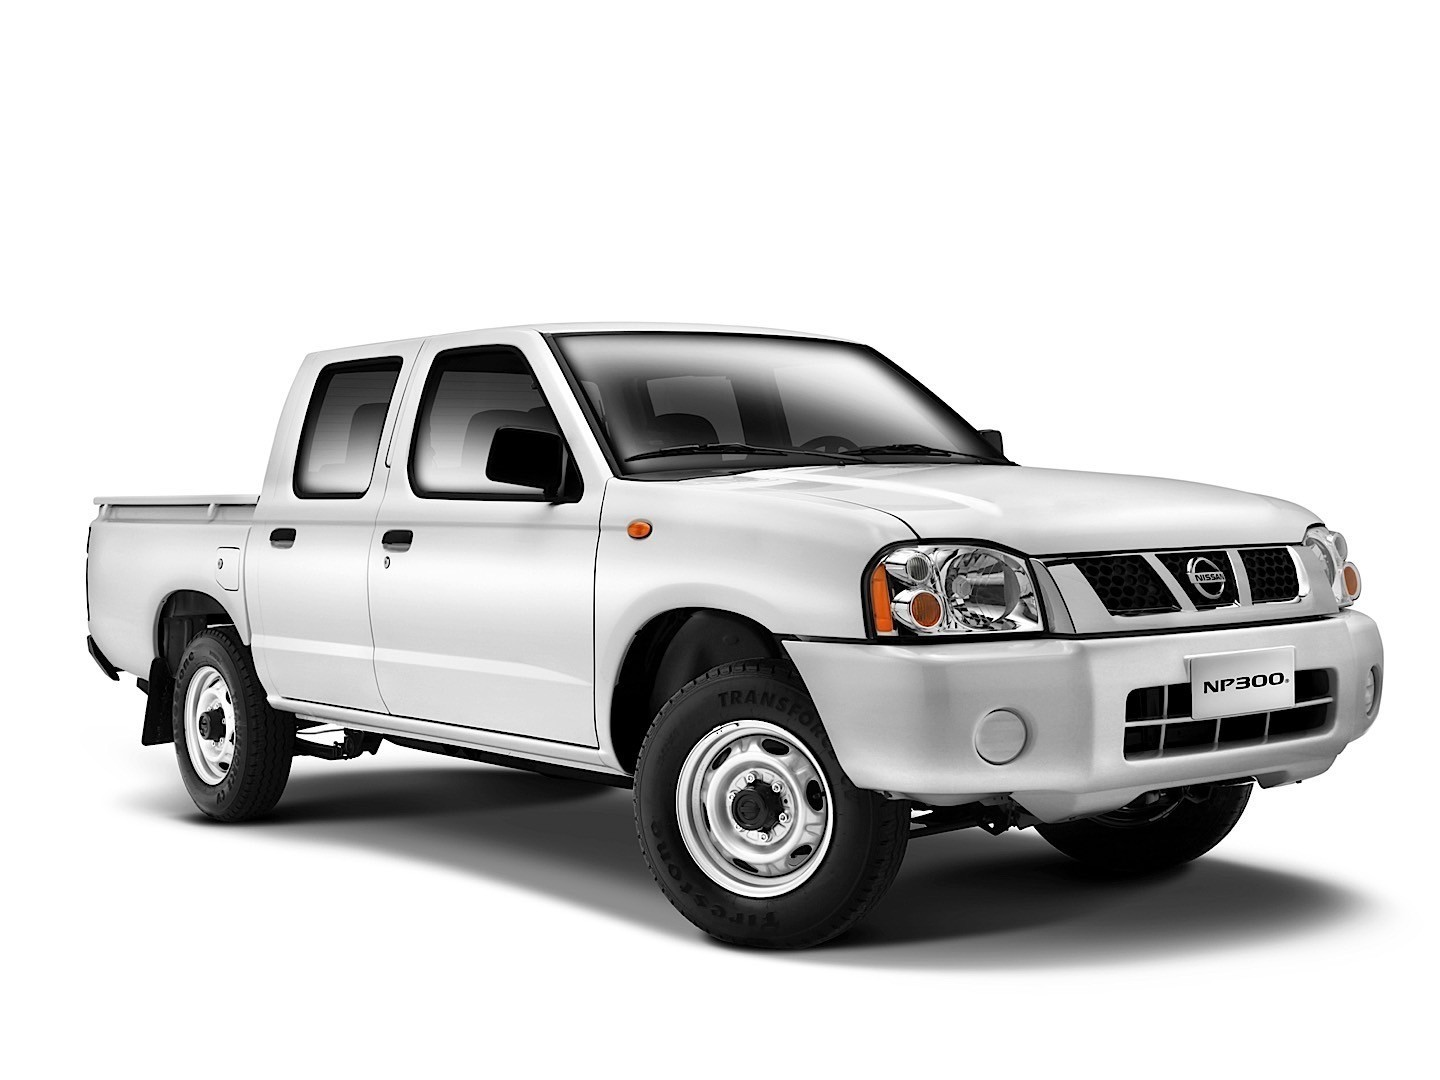 Nissan NP300 2.5DCI Denso 23710-vn25a E30SU4D T2F1D220D5